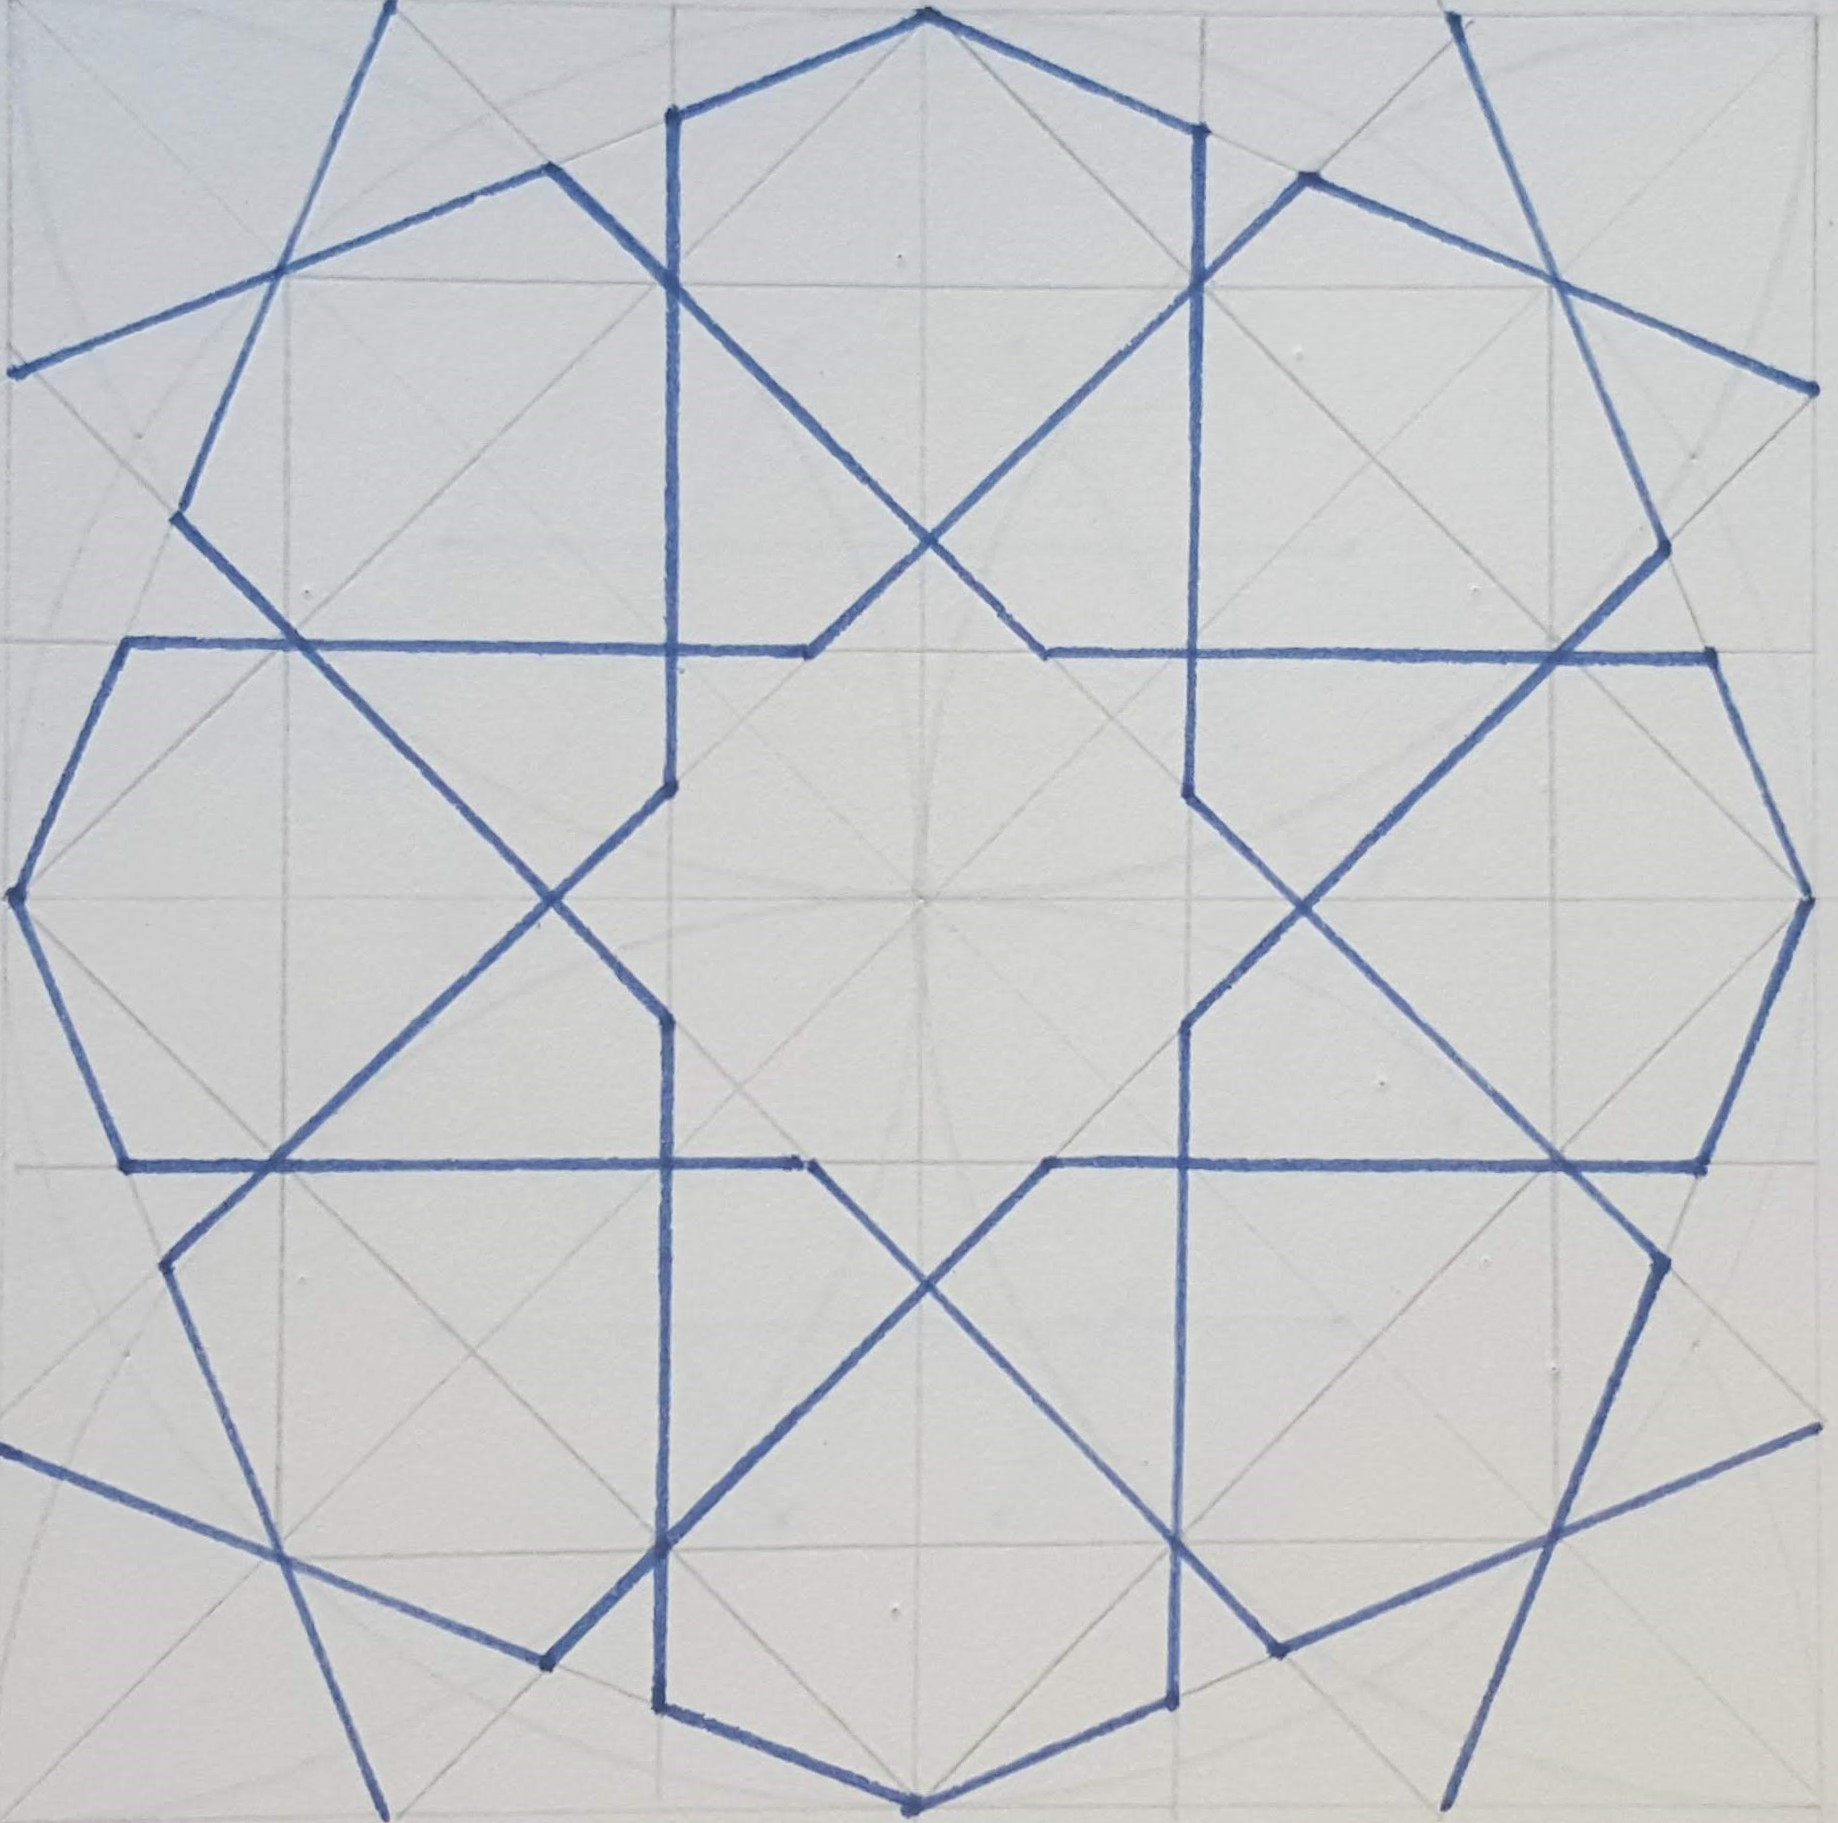 A pen drawing of a geometric pattern tile on a pencil grid, drawn with a compass and ruler.